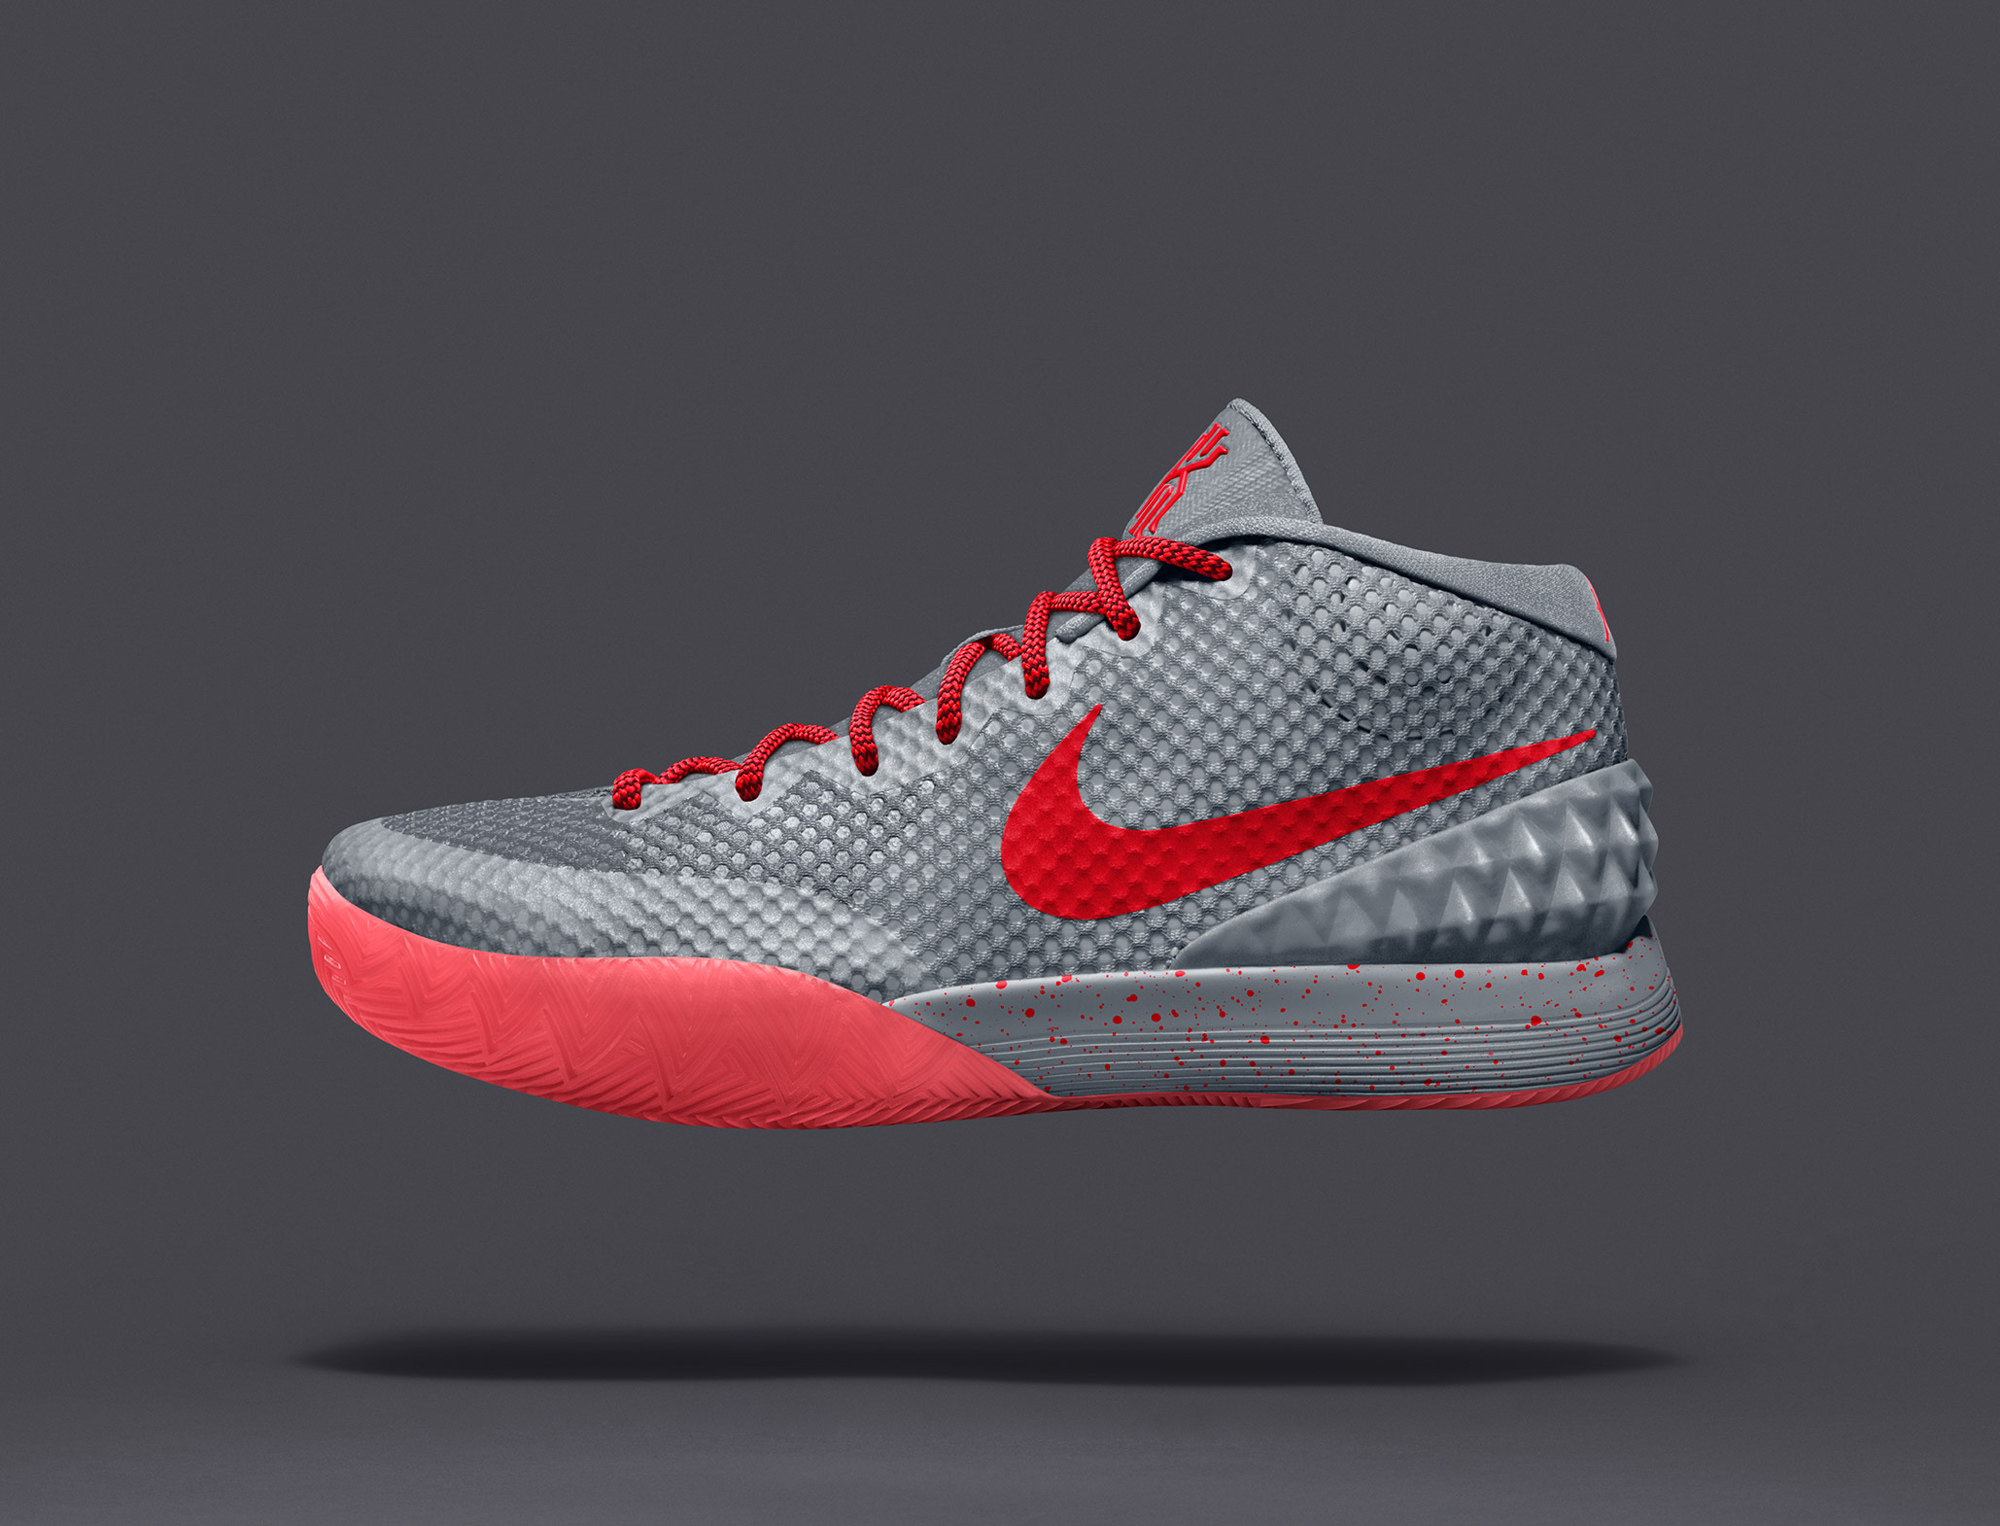 new product c99b7 0b98f kyrie irving shoes nike nike football